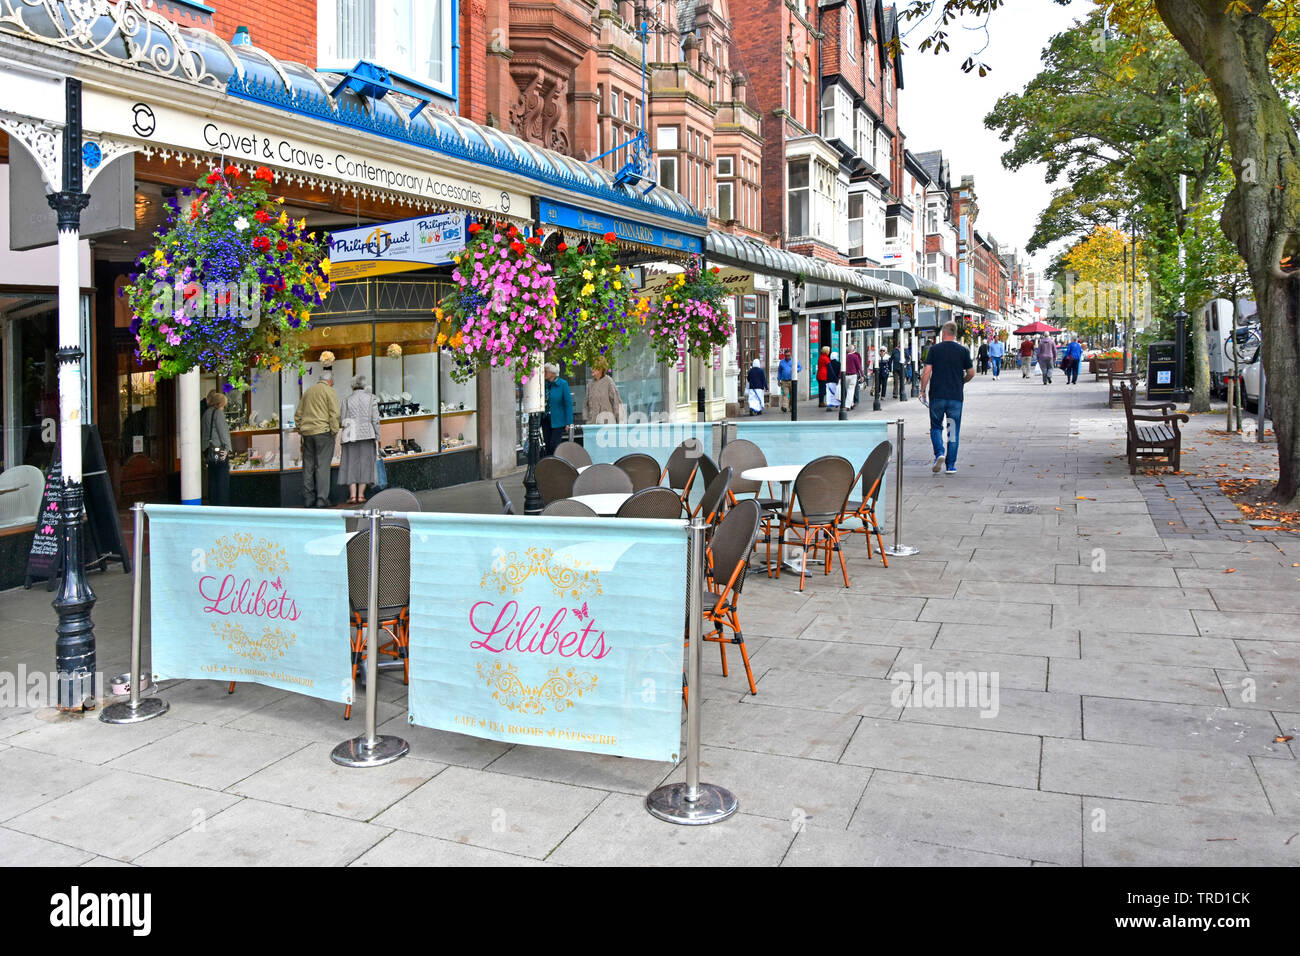 Cafe waits for trade in seaside town shopping street scene old glass canopies & colourful hanging baskets over shop front Lord Street Southport UK Stock Photo